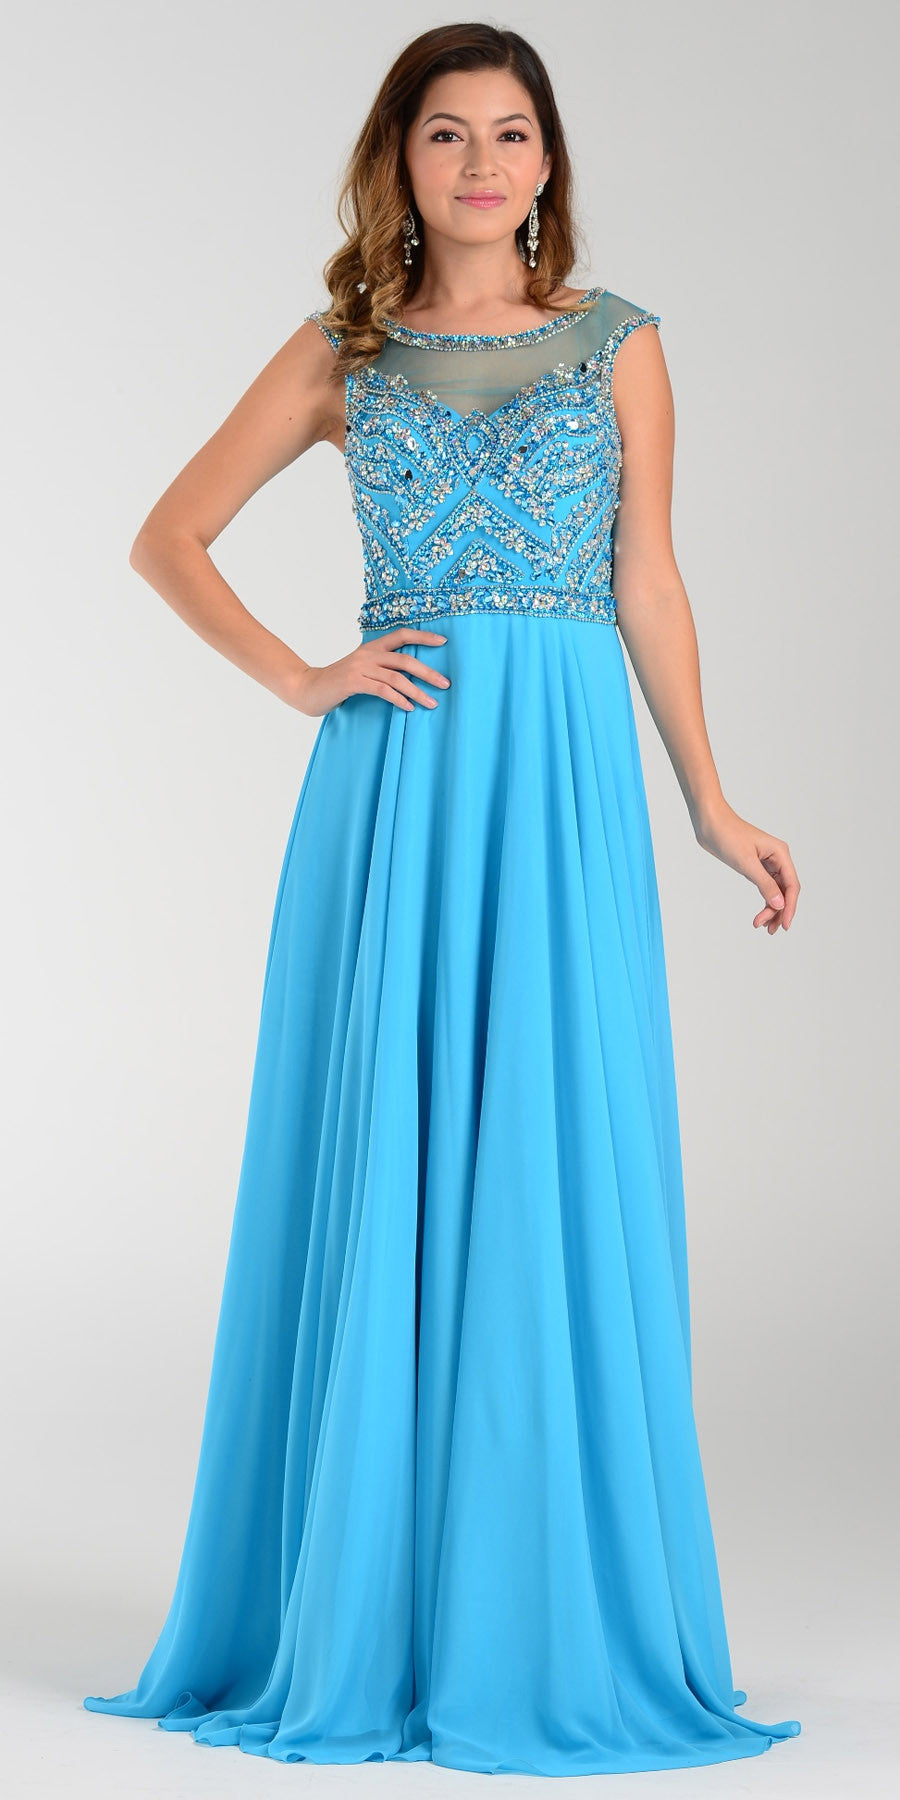 Illusion Bateau Neck Long Chiffon/Mesh A Line Dress Sky Blue